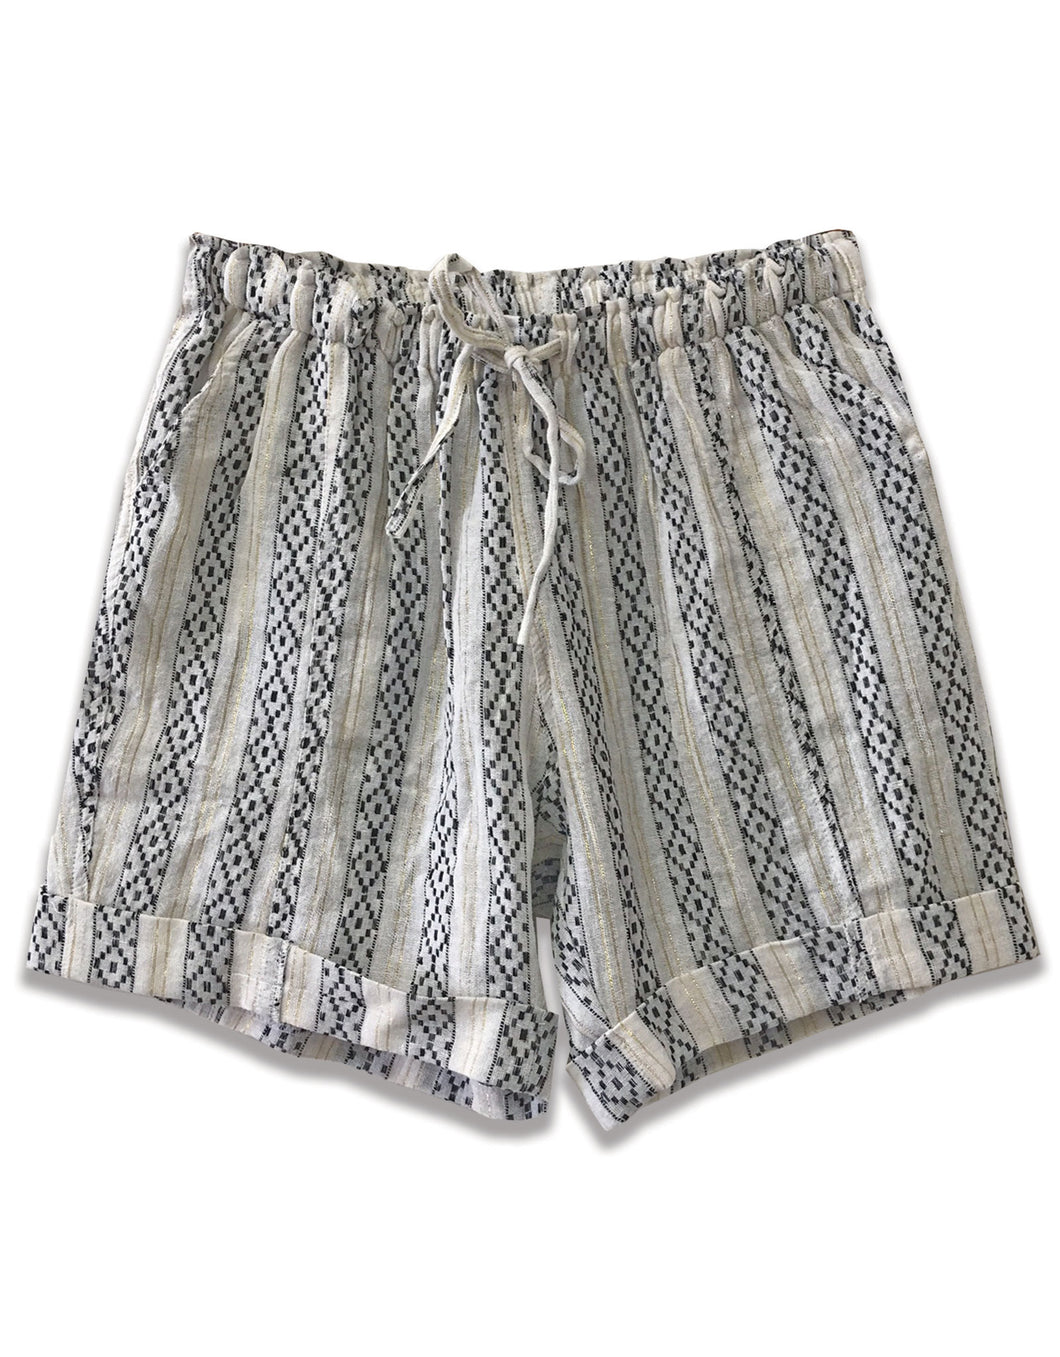 Ikat Print Drawstring Short - 4our Dreamers